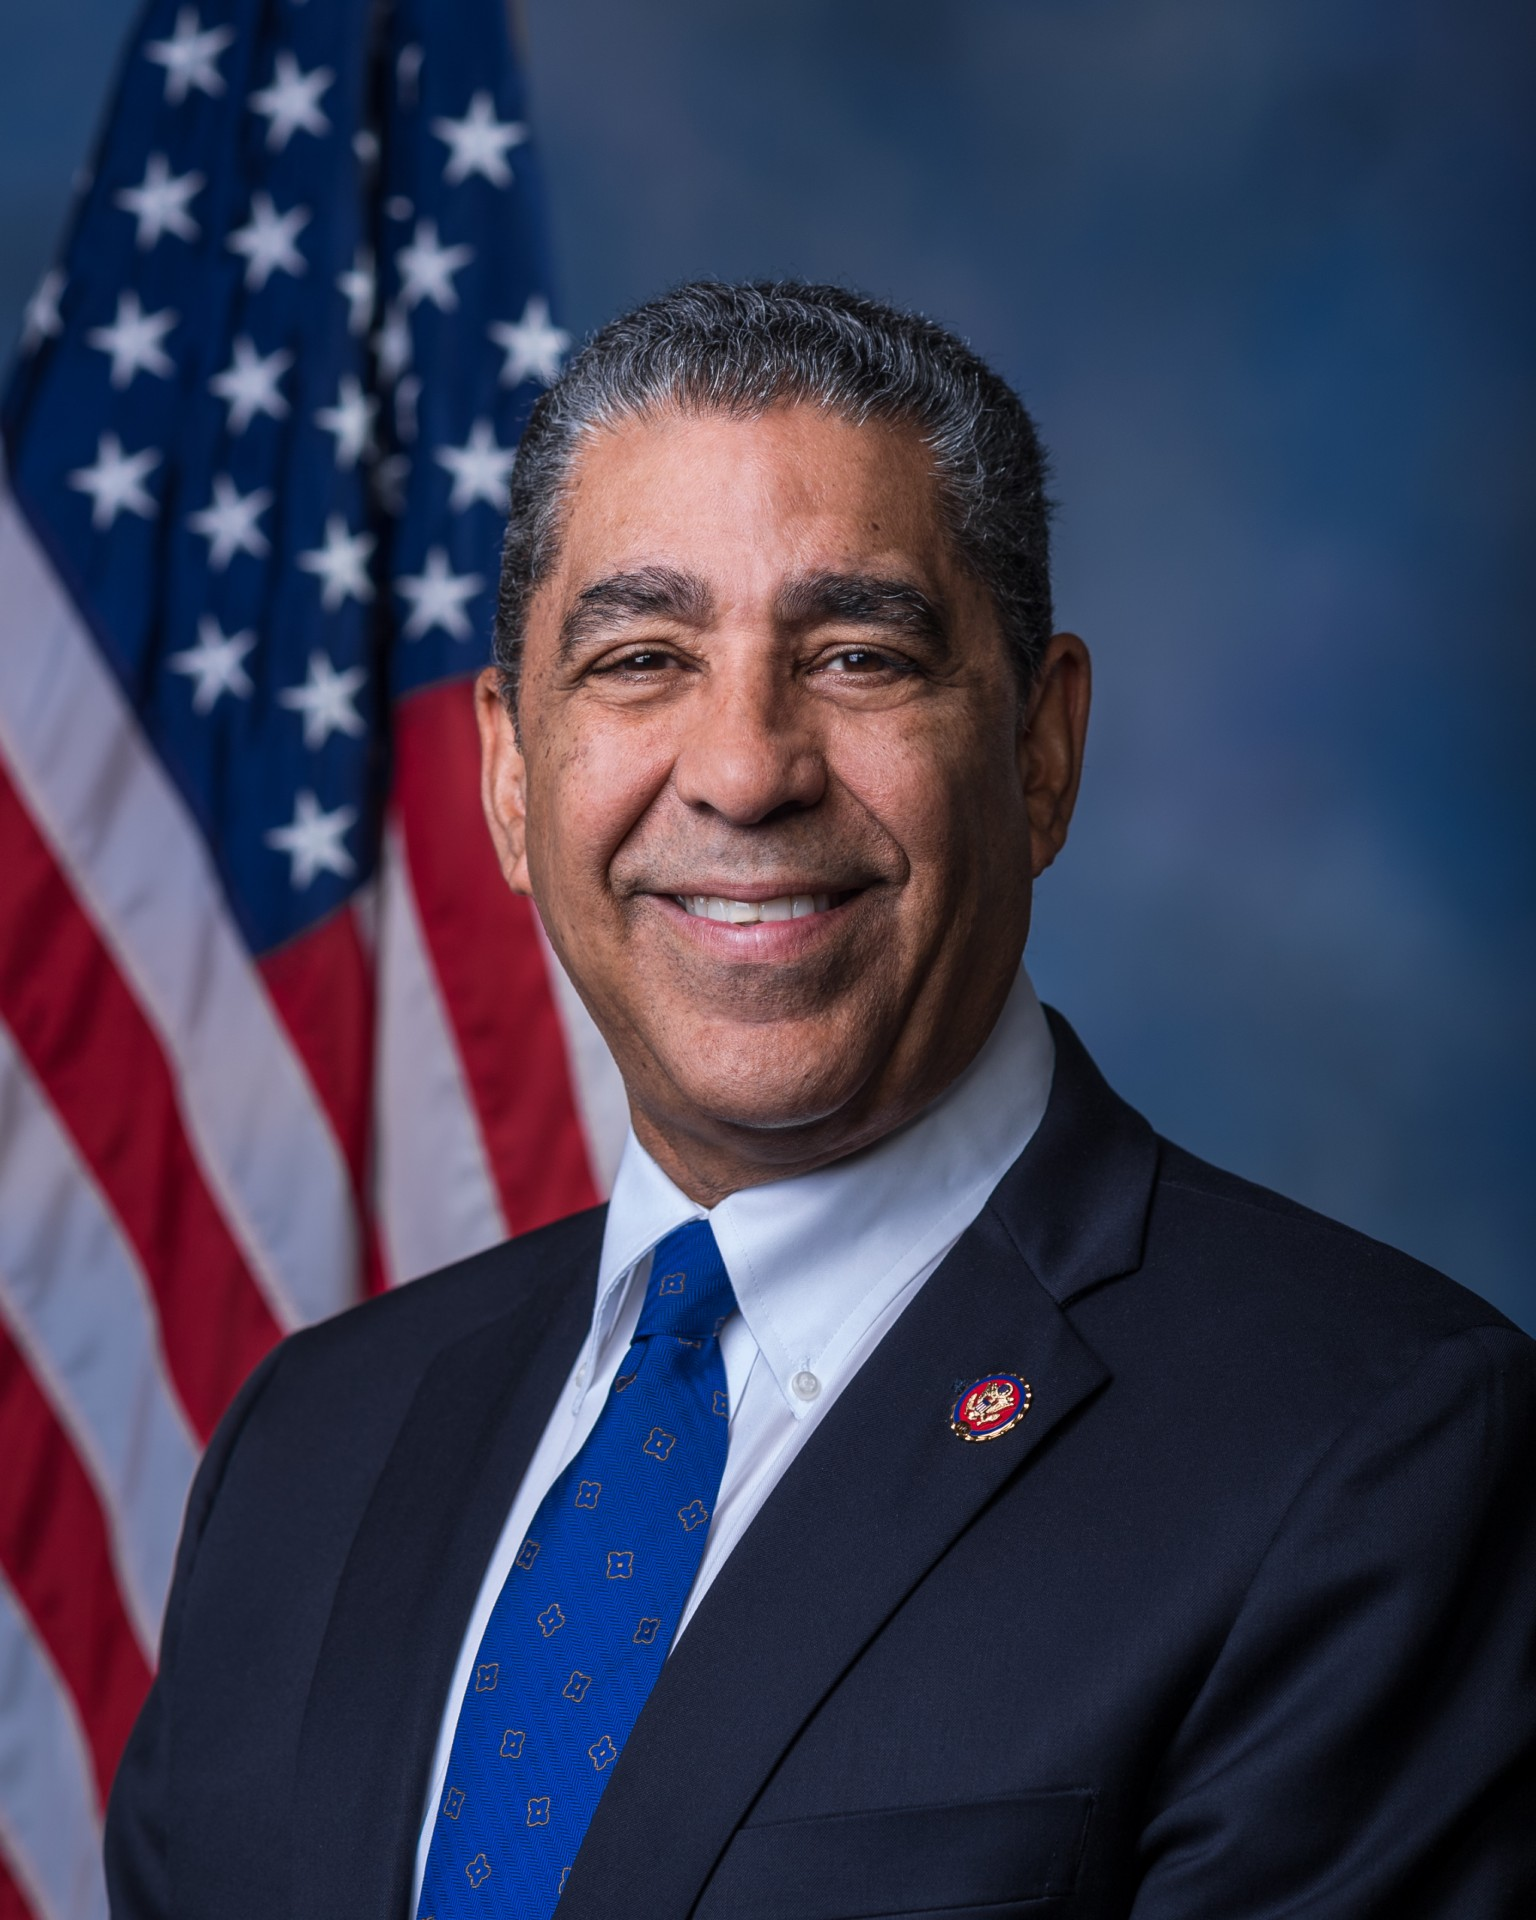 https://upload.wikimedia.org/wikipedia/commons/8/80/Rep._Adriano_Espaillat_Official_Photo_116th_Congress.jpg